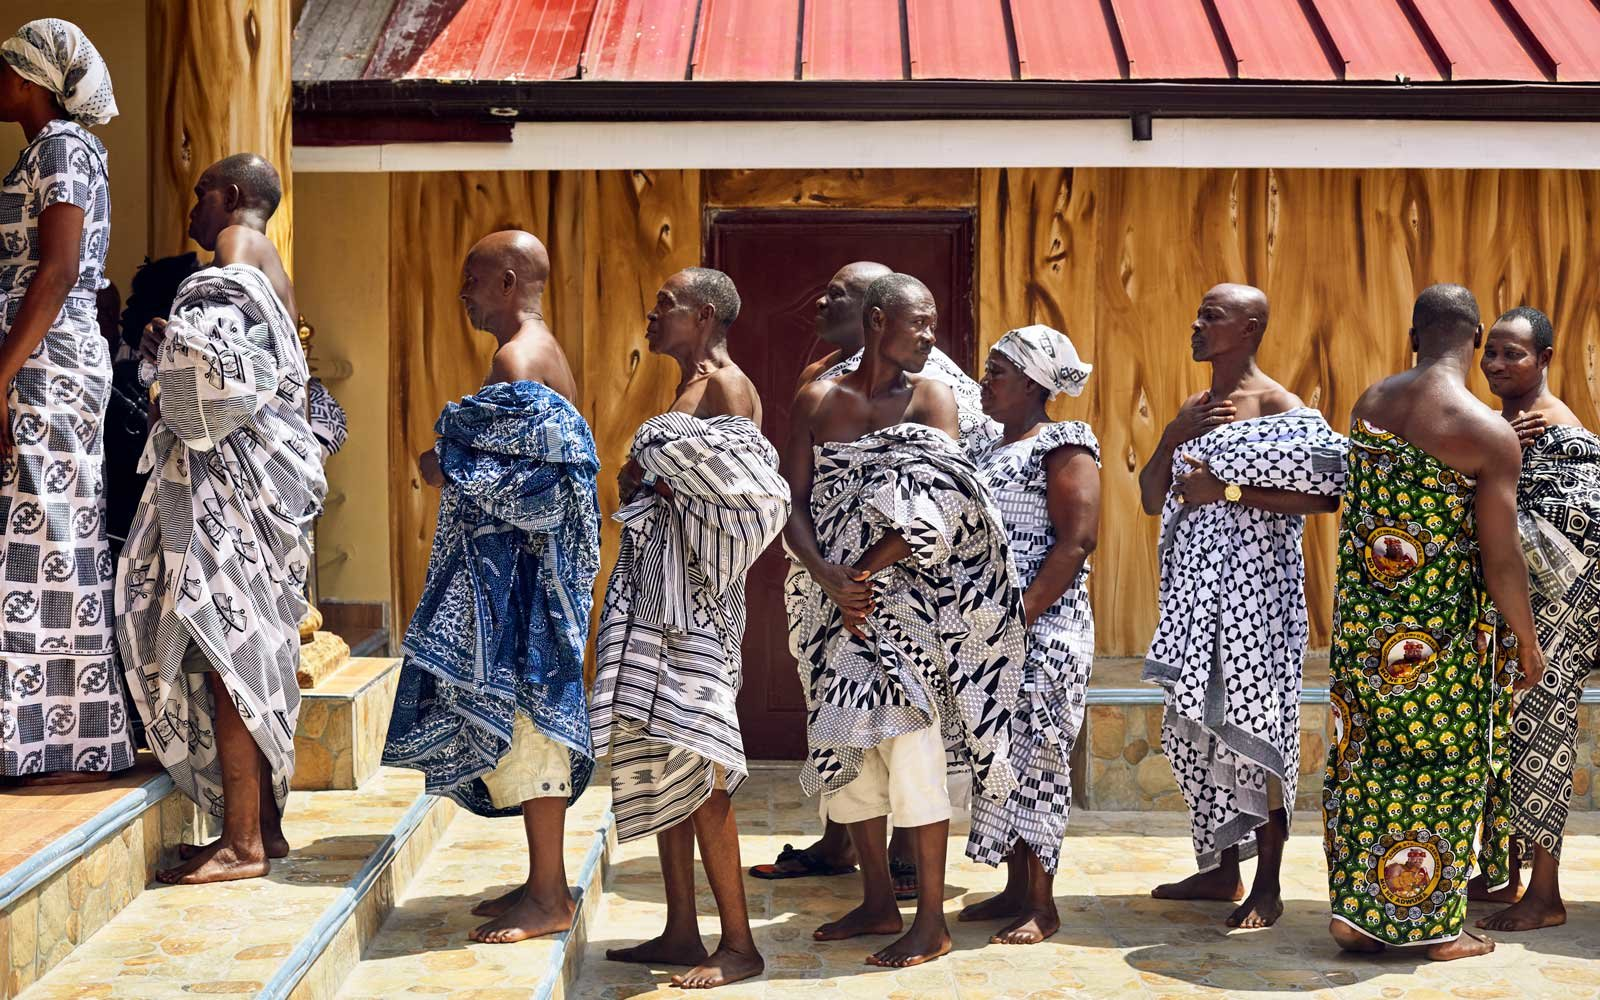 Shoulder Exposed for the King, Ghana 2014. From Circadian Landscape by Jessica Antola